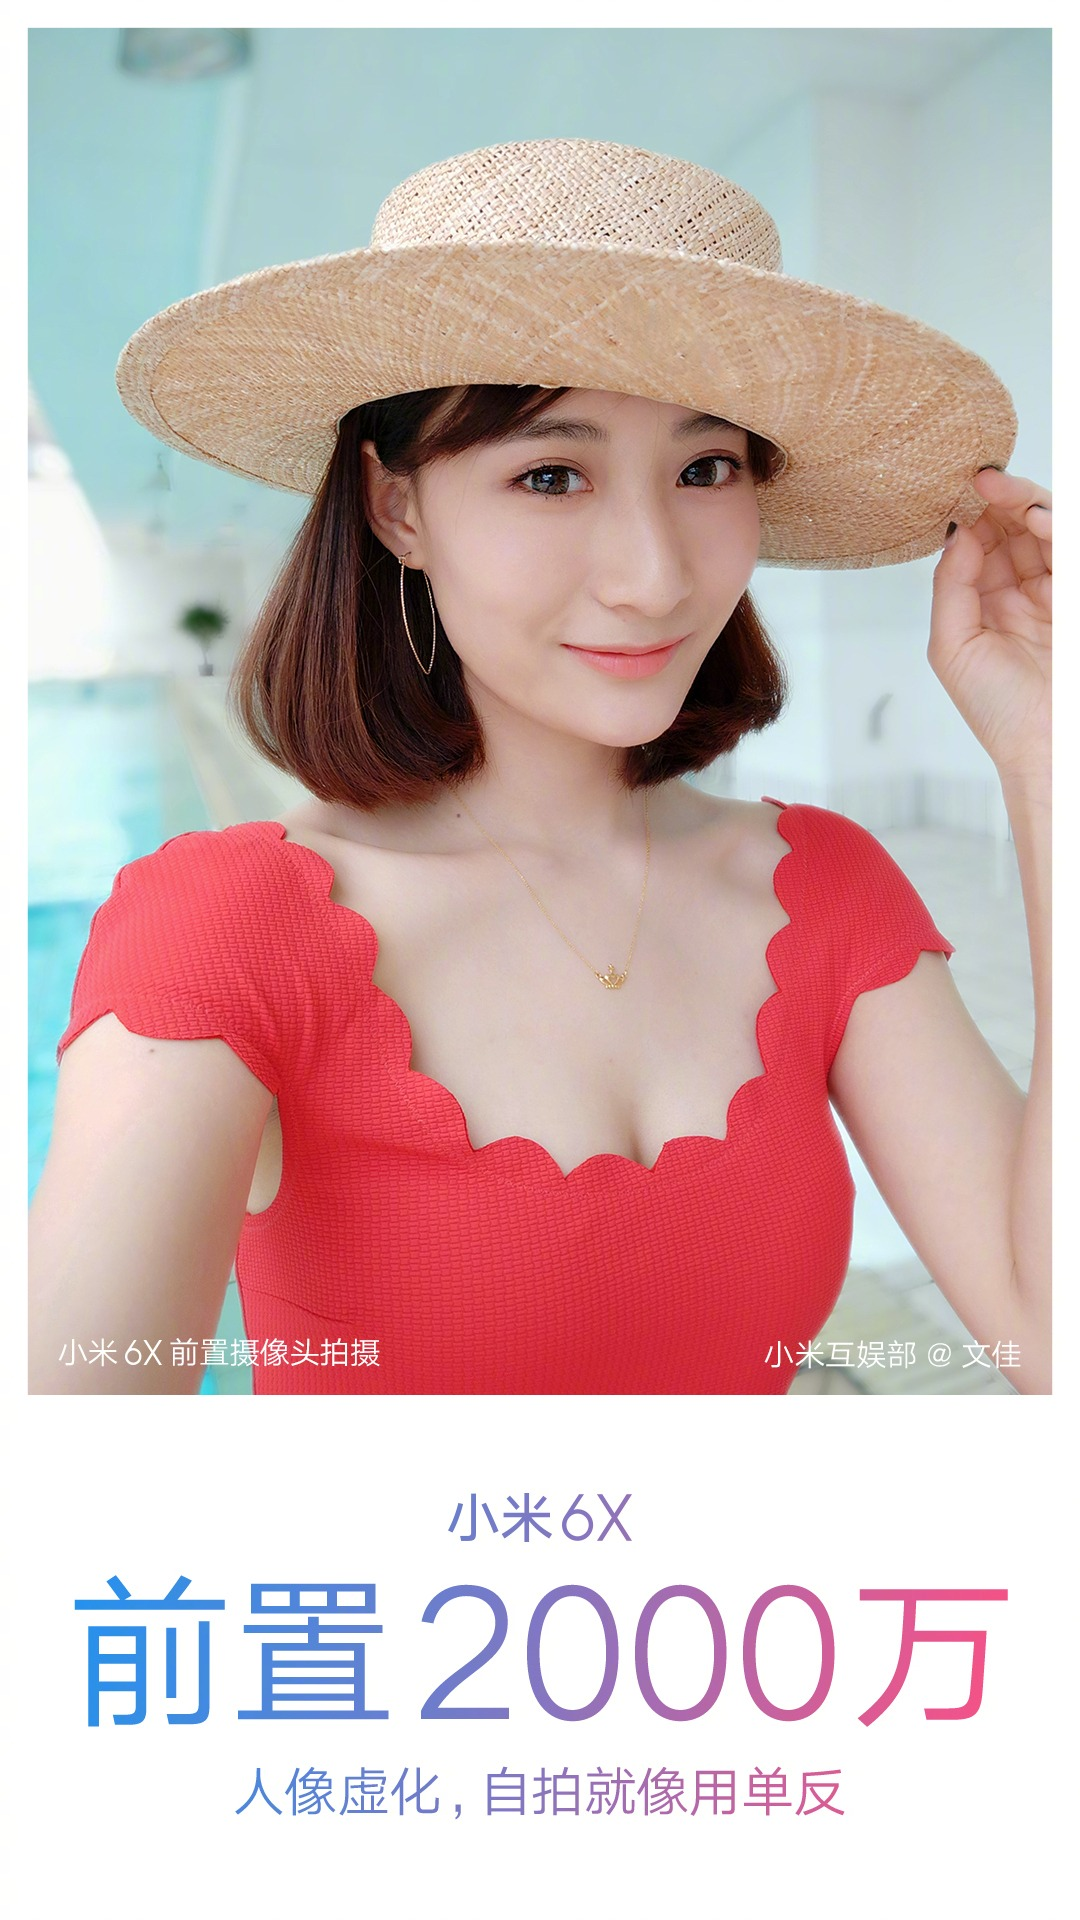 Check out these latest Xiaomi Mi 6X Camera Samples 24